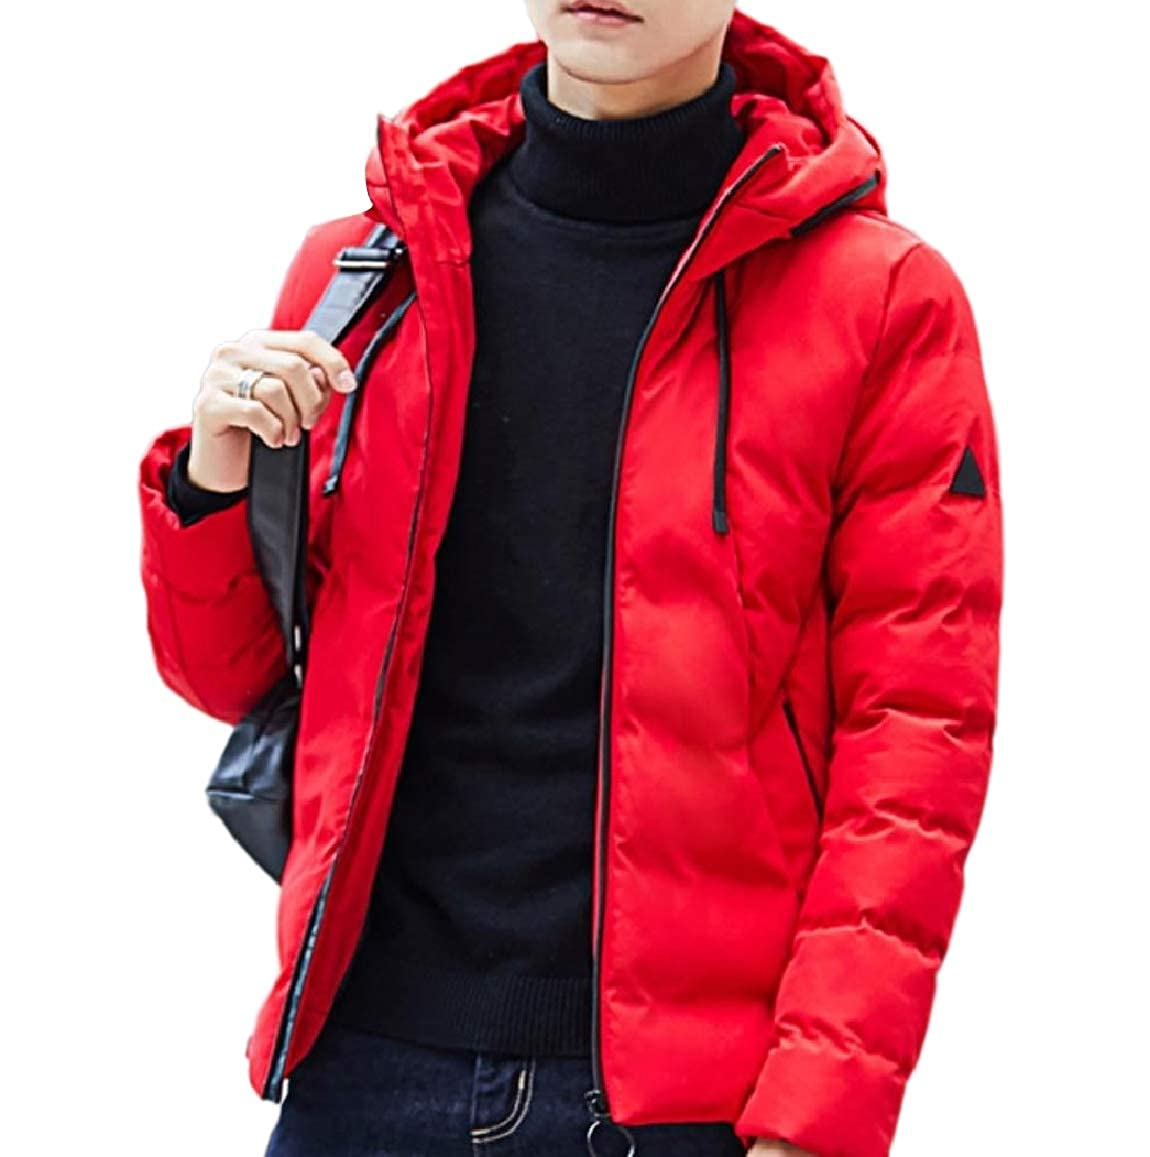 RDHOPE-Men Hoodie Jacket Coat Quilted Thicken Relaxed Padded Parka Outwear